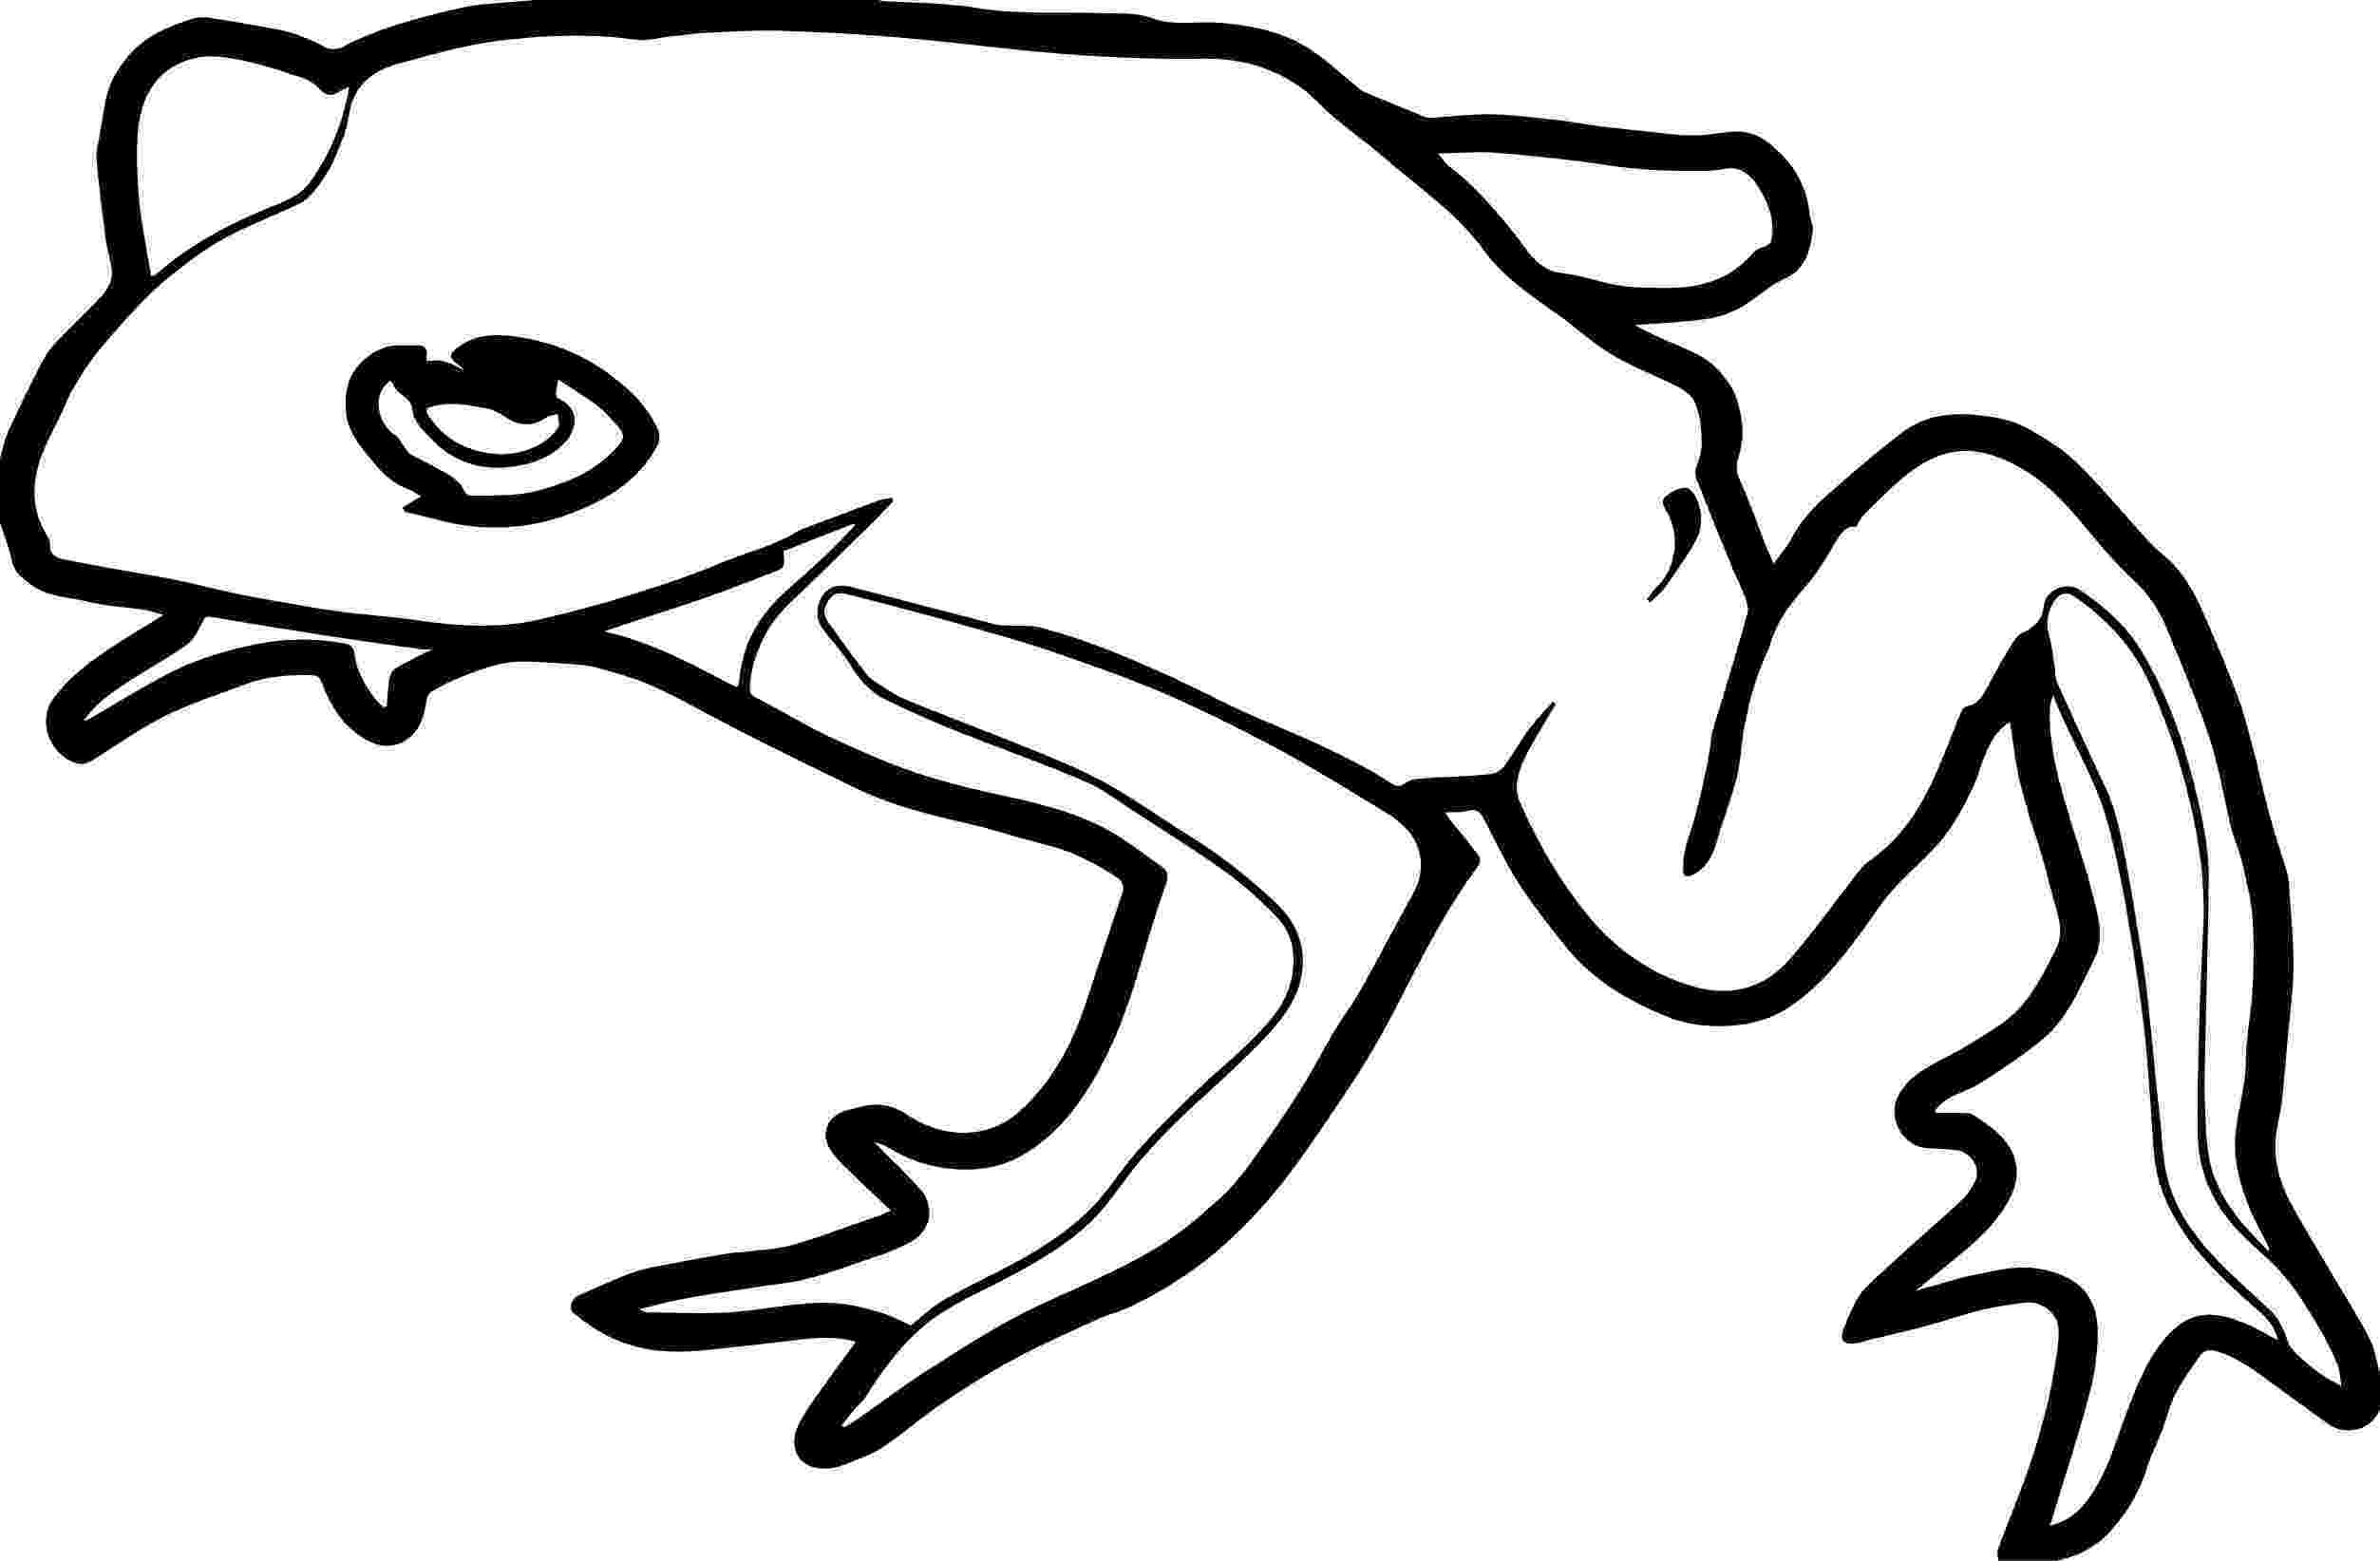 amphibian coloring pages best 13 coloring pages dragons lizards dinosaurs coloring amphibian pages